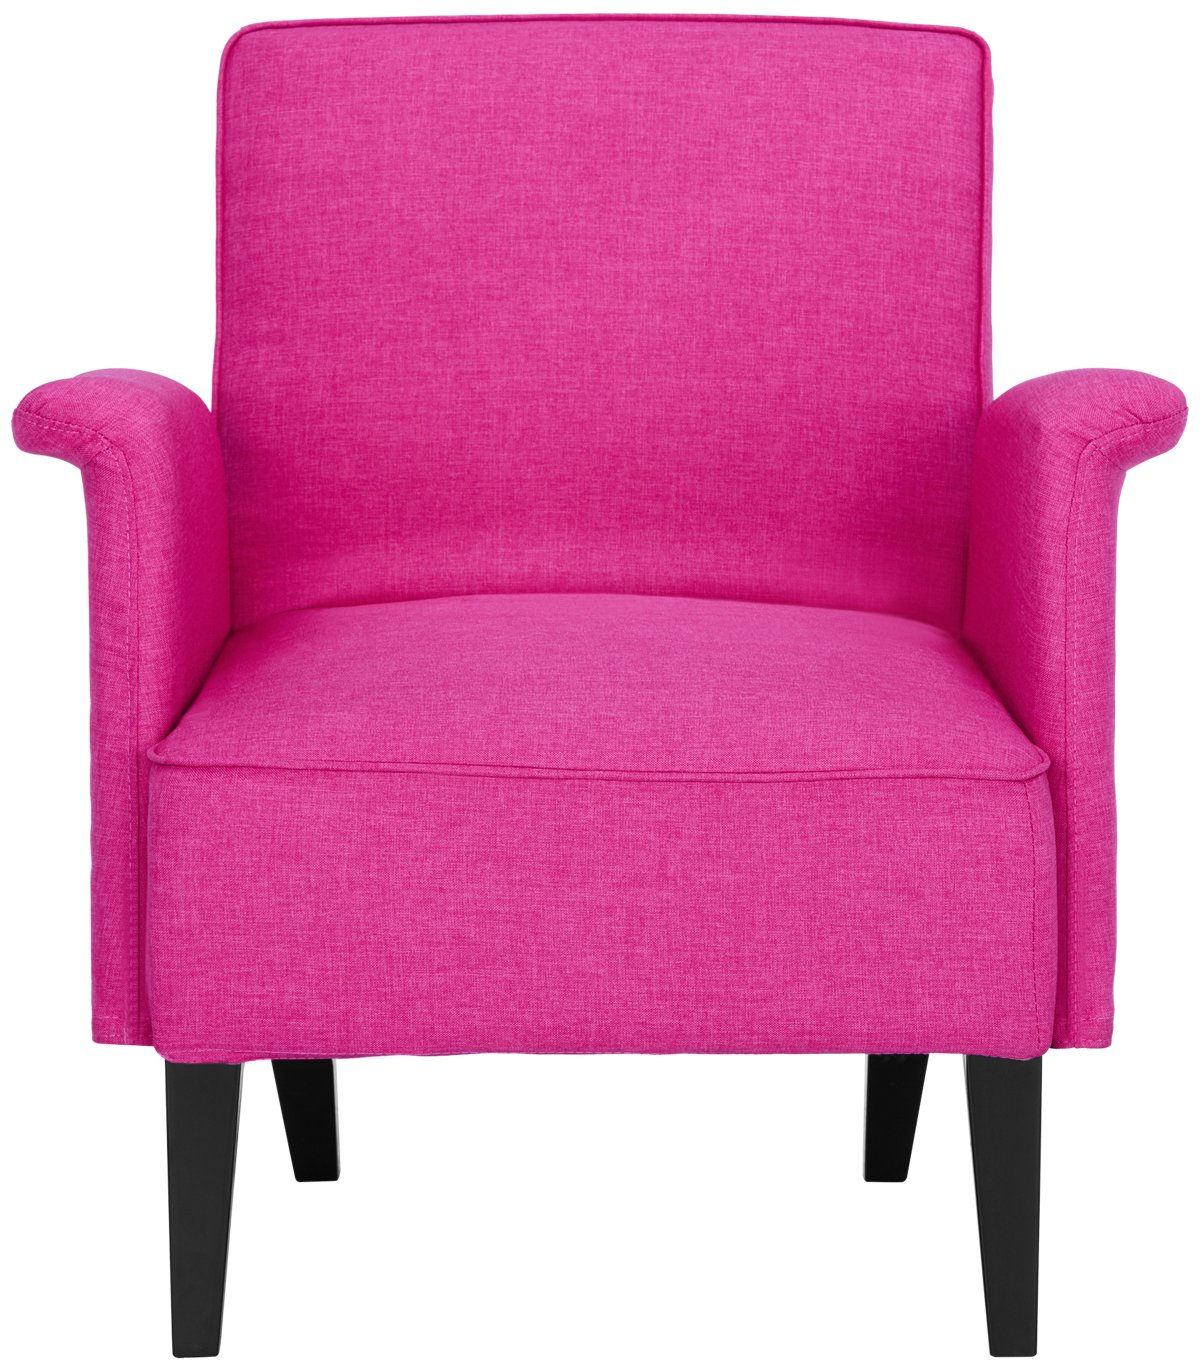 City Furniture Nigel Pink Accent Chair